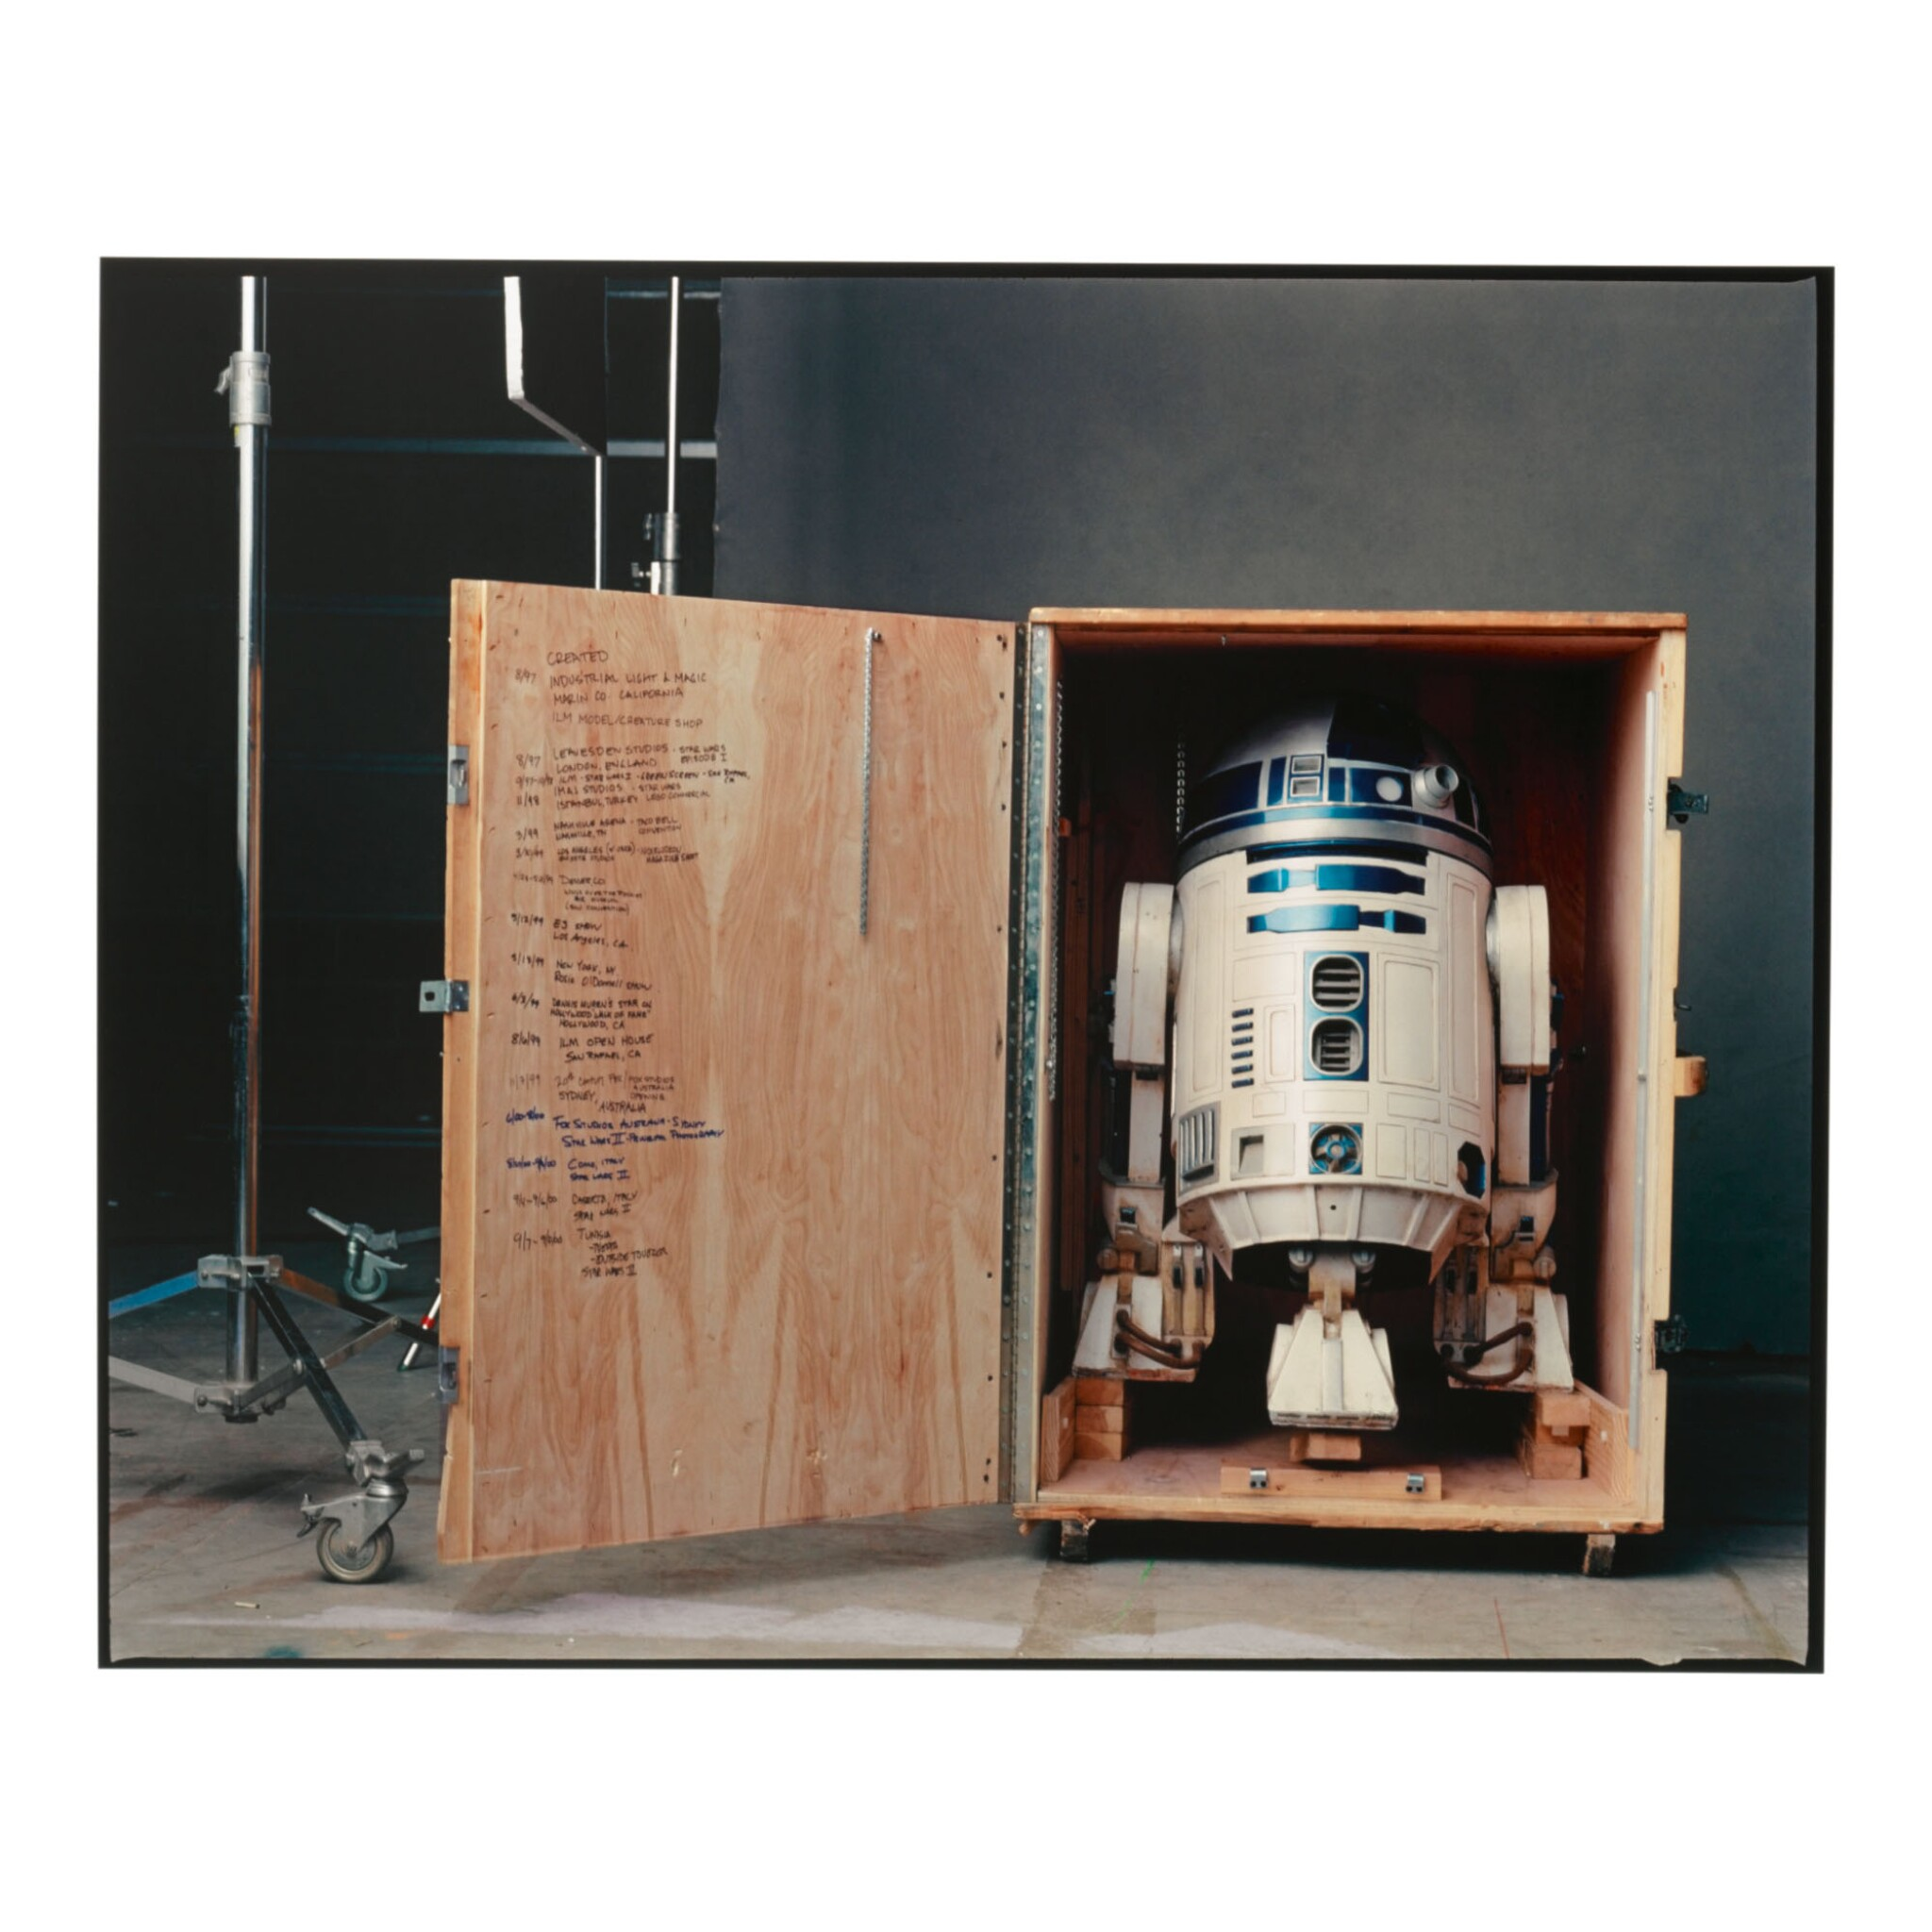 View full screen - View 1 of Lot 78. ANNIE LEIBOVITZ | R2-D2, PINEWOOD STUDIOS, LONDON.